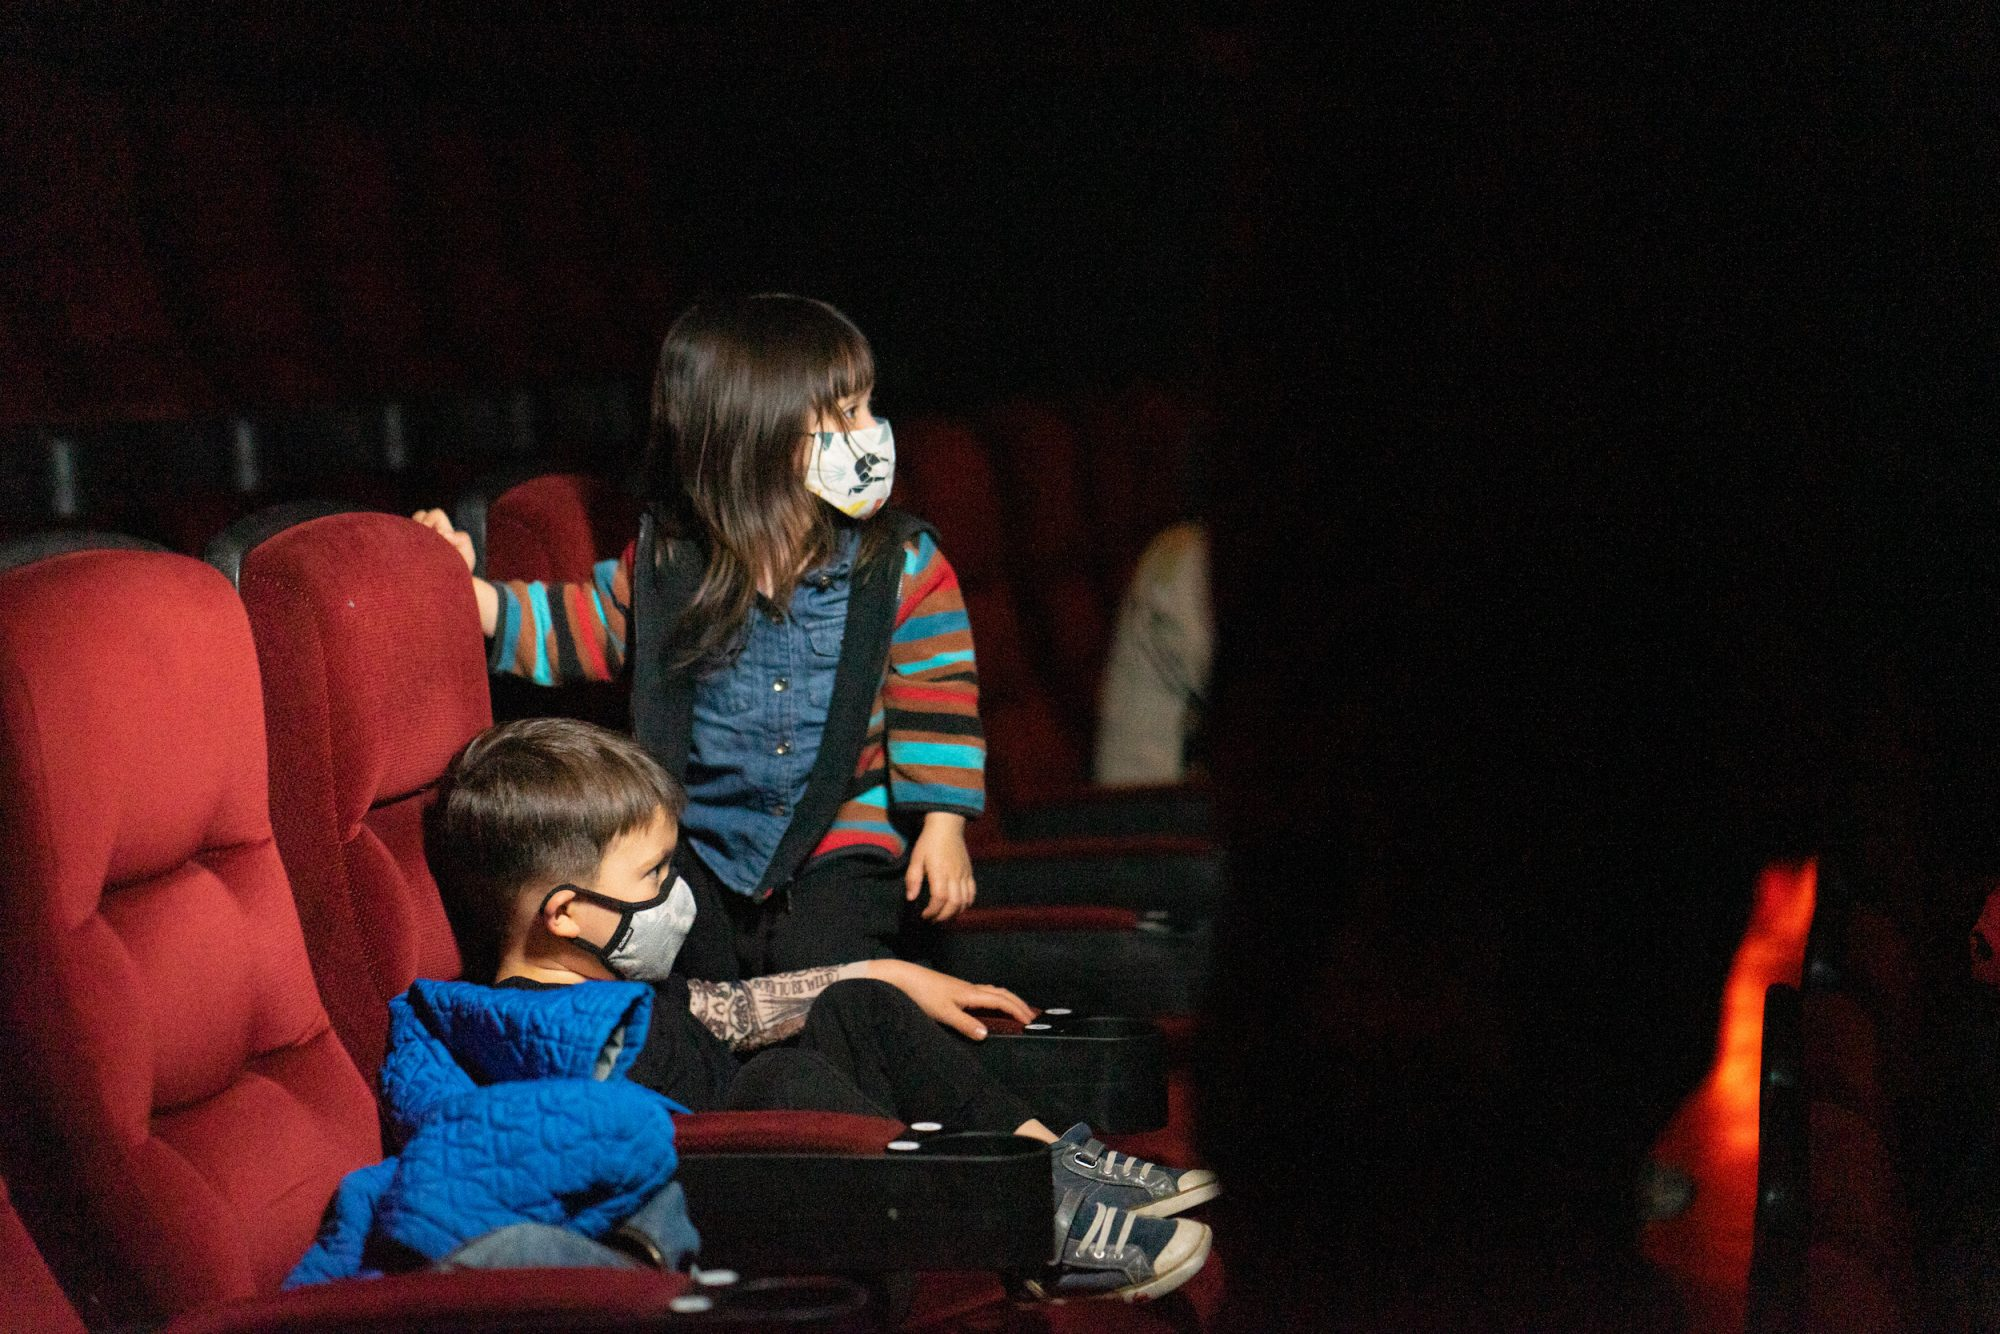 Phase 3 of lifting Covid restrictions in Qatar from Friday; kids allowed in cinemas